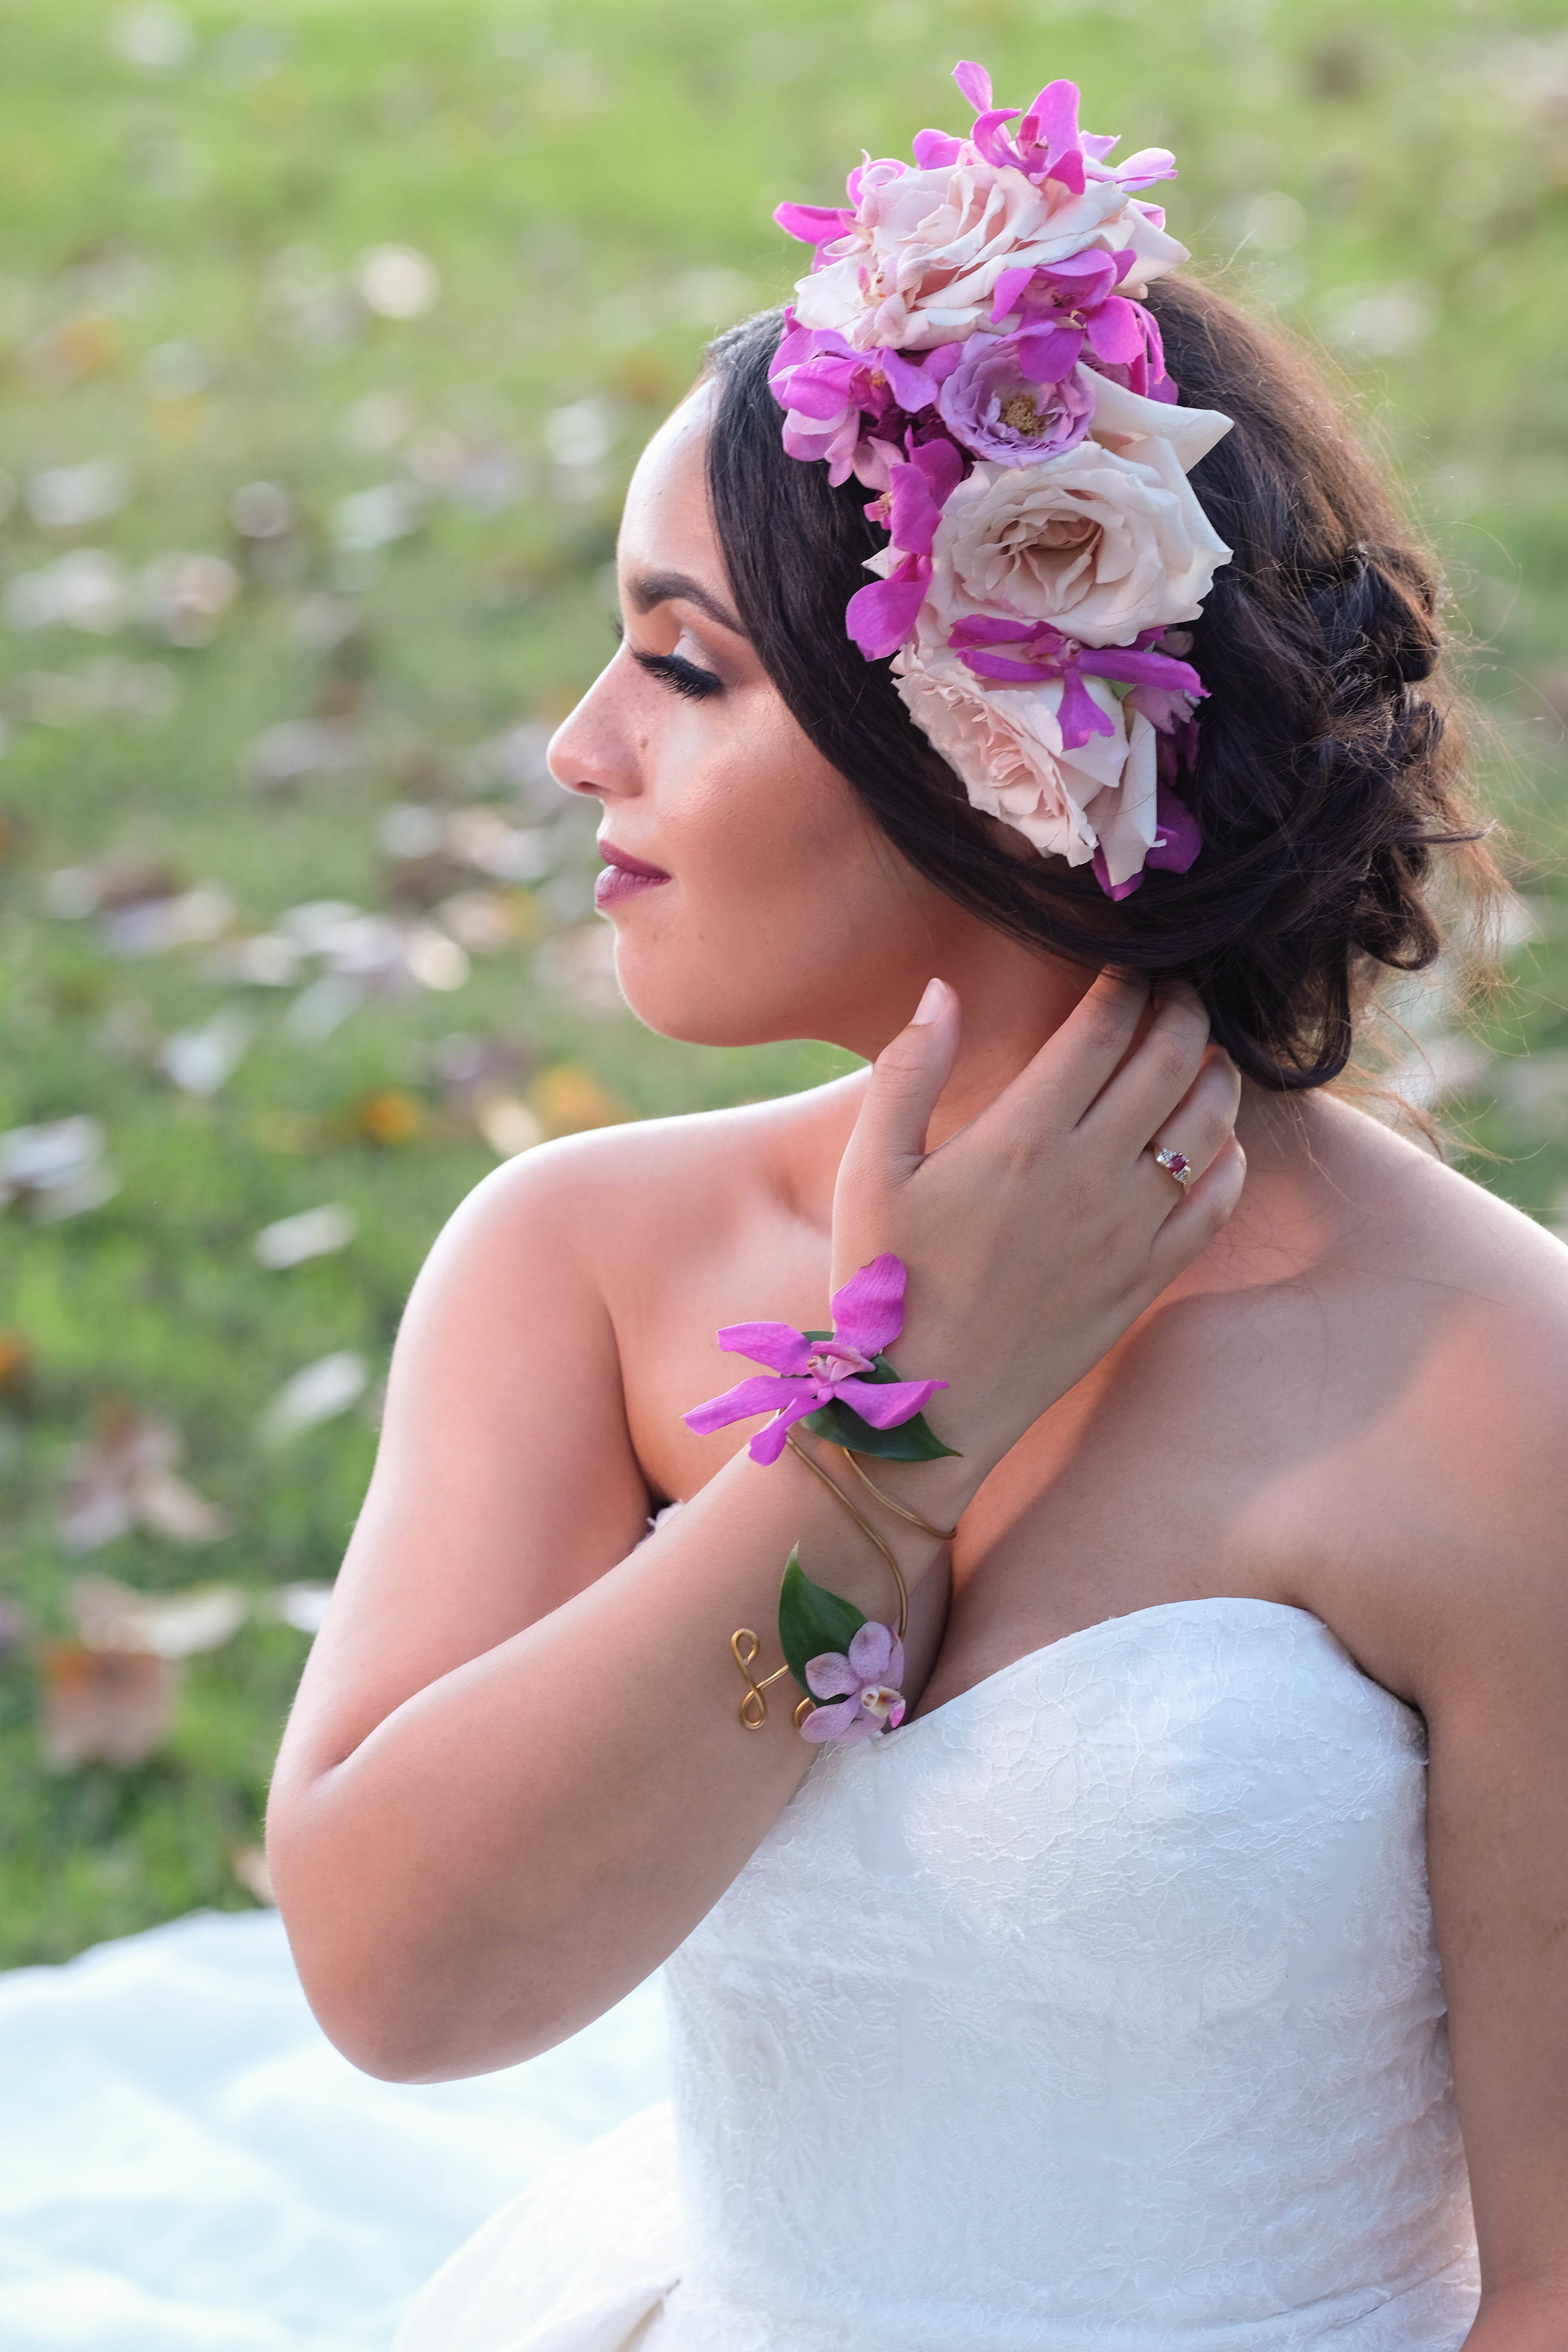 Bridal Makeup at Blue Rose Beauty